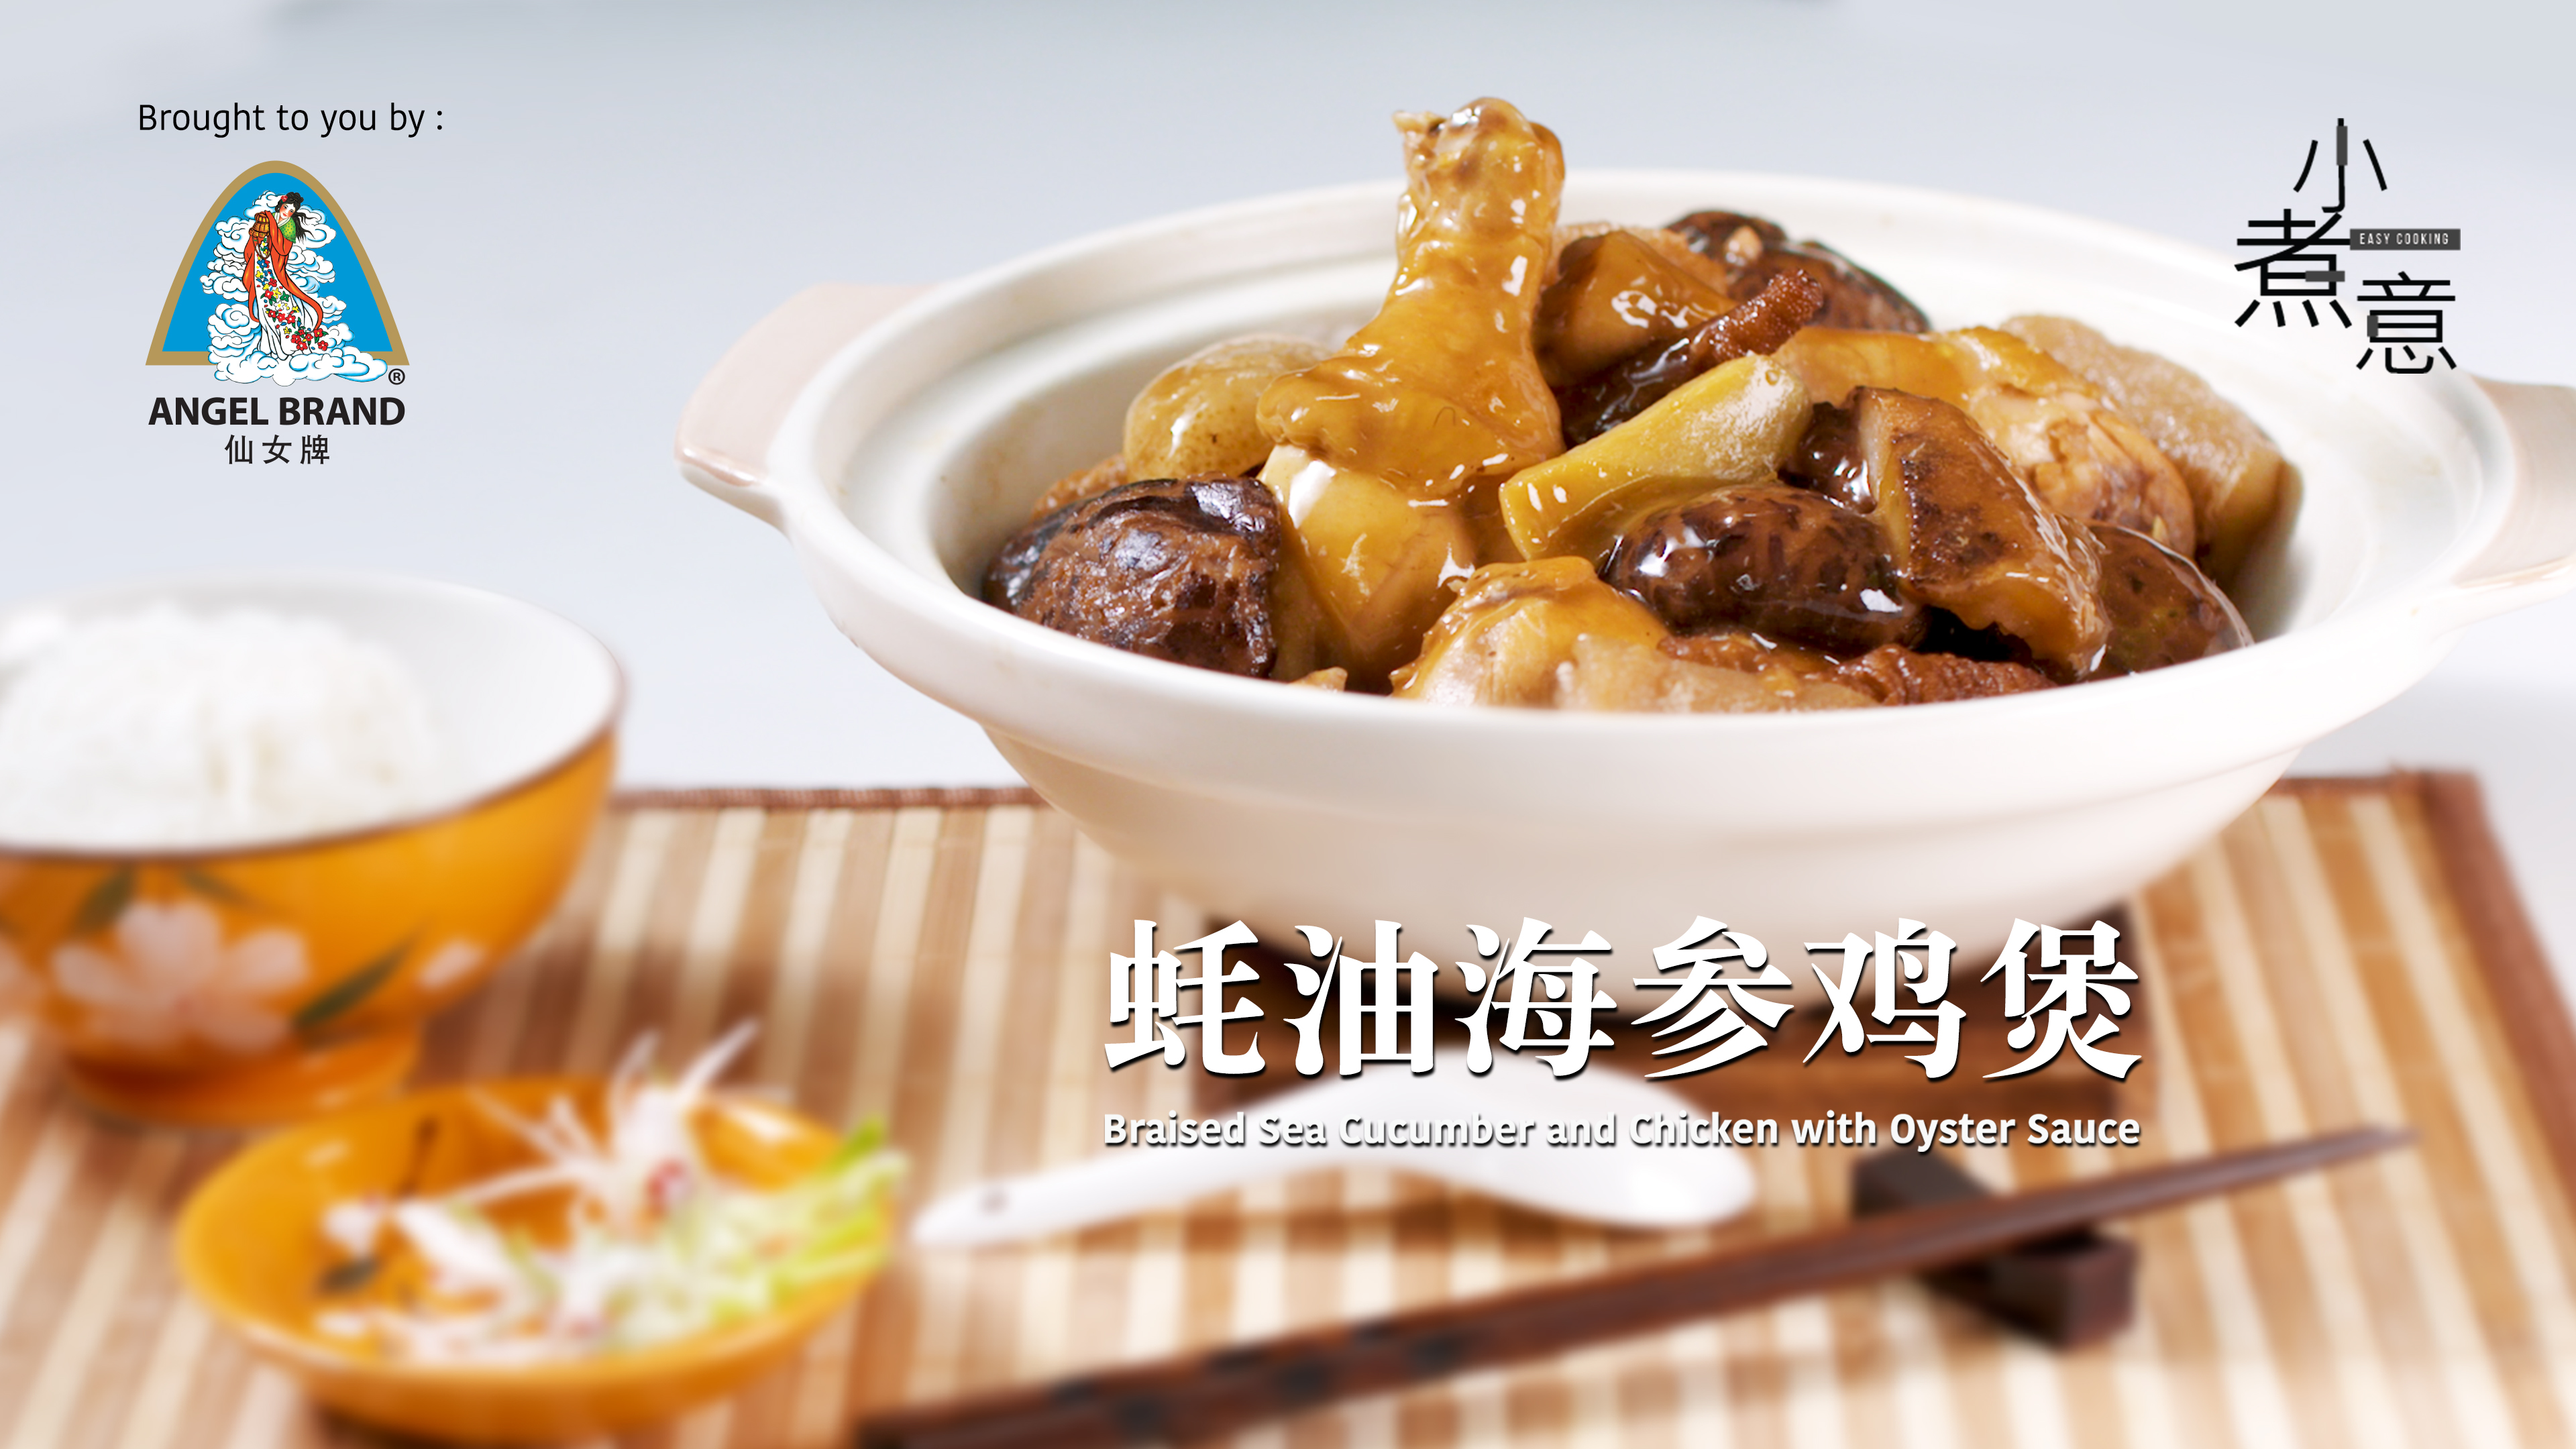 Braised Sea Cucumber and Chicken with Oyster Sauce